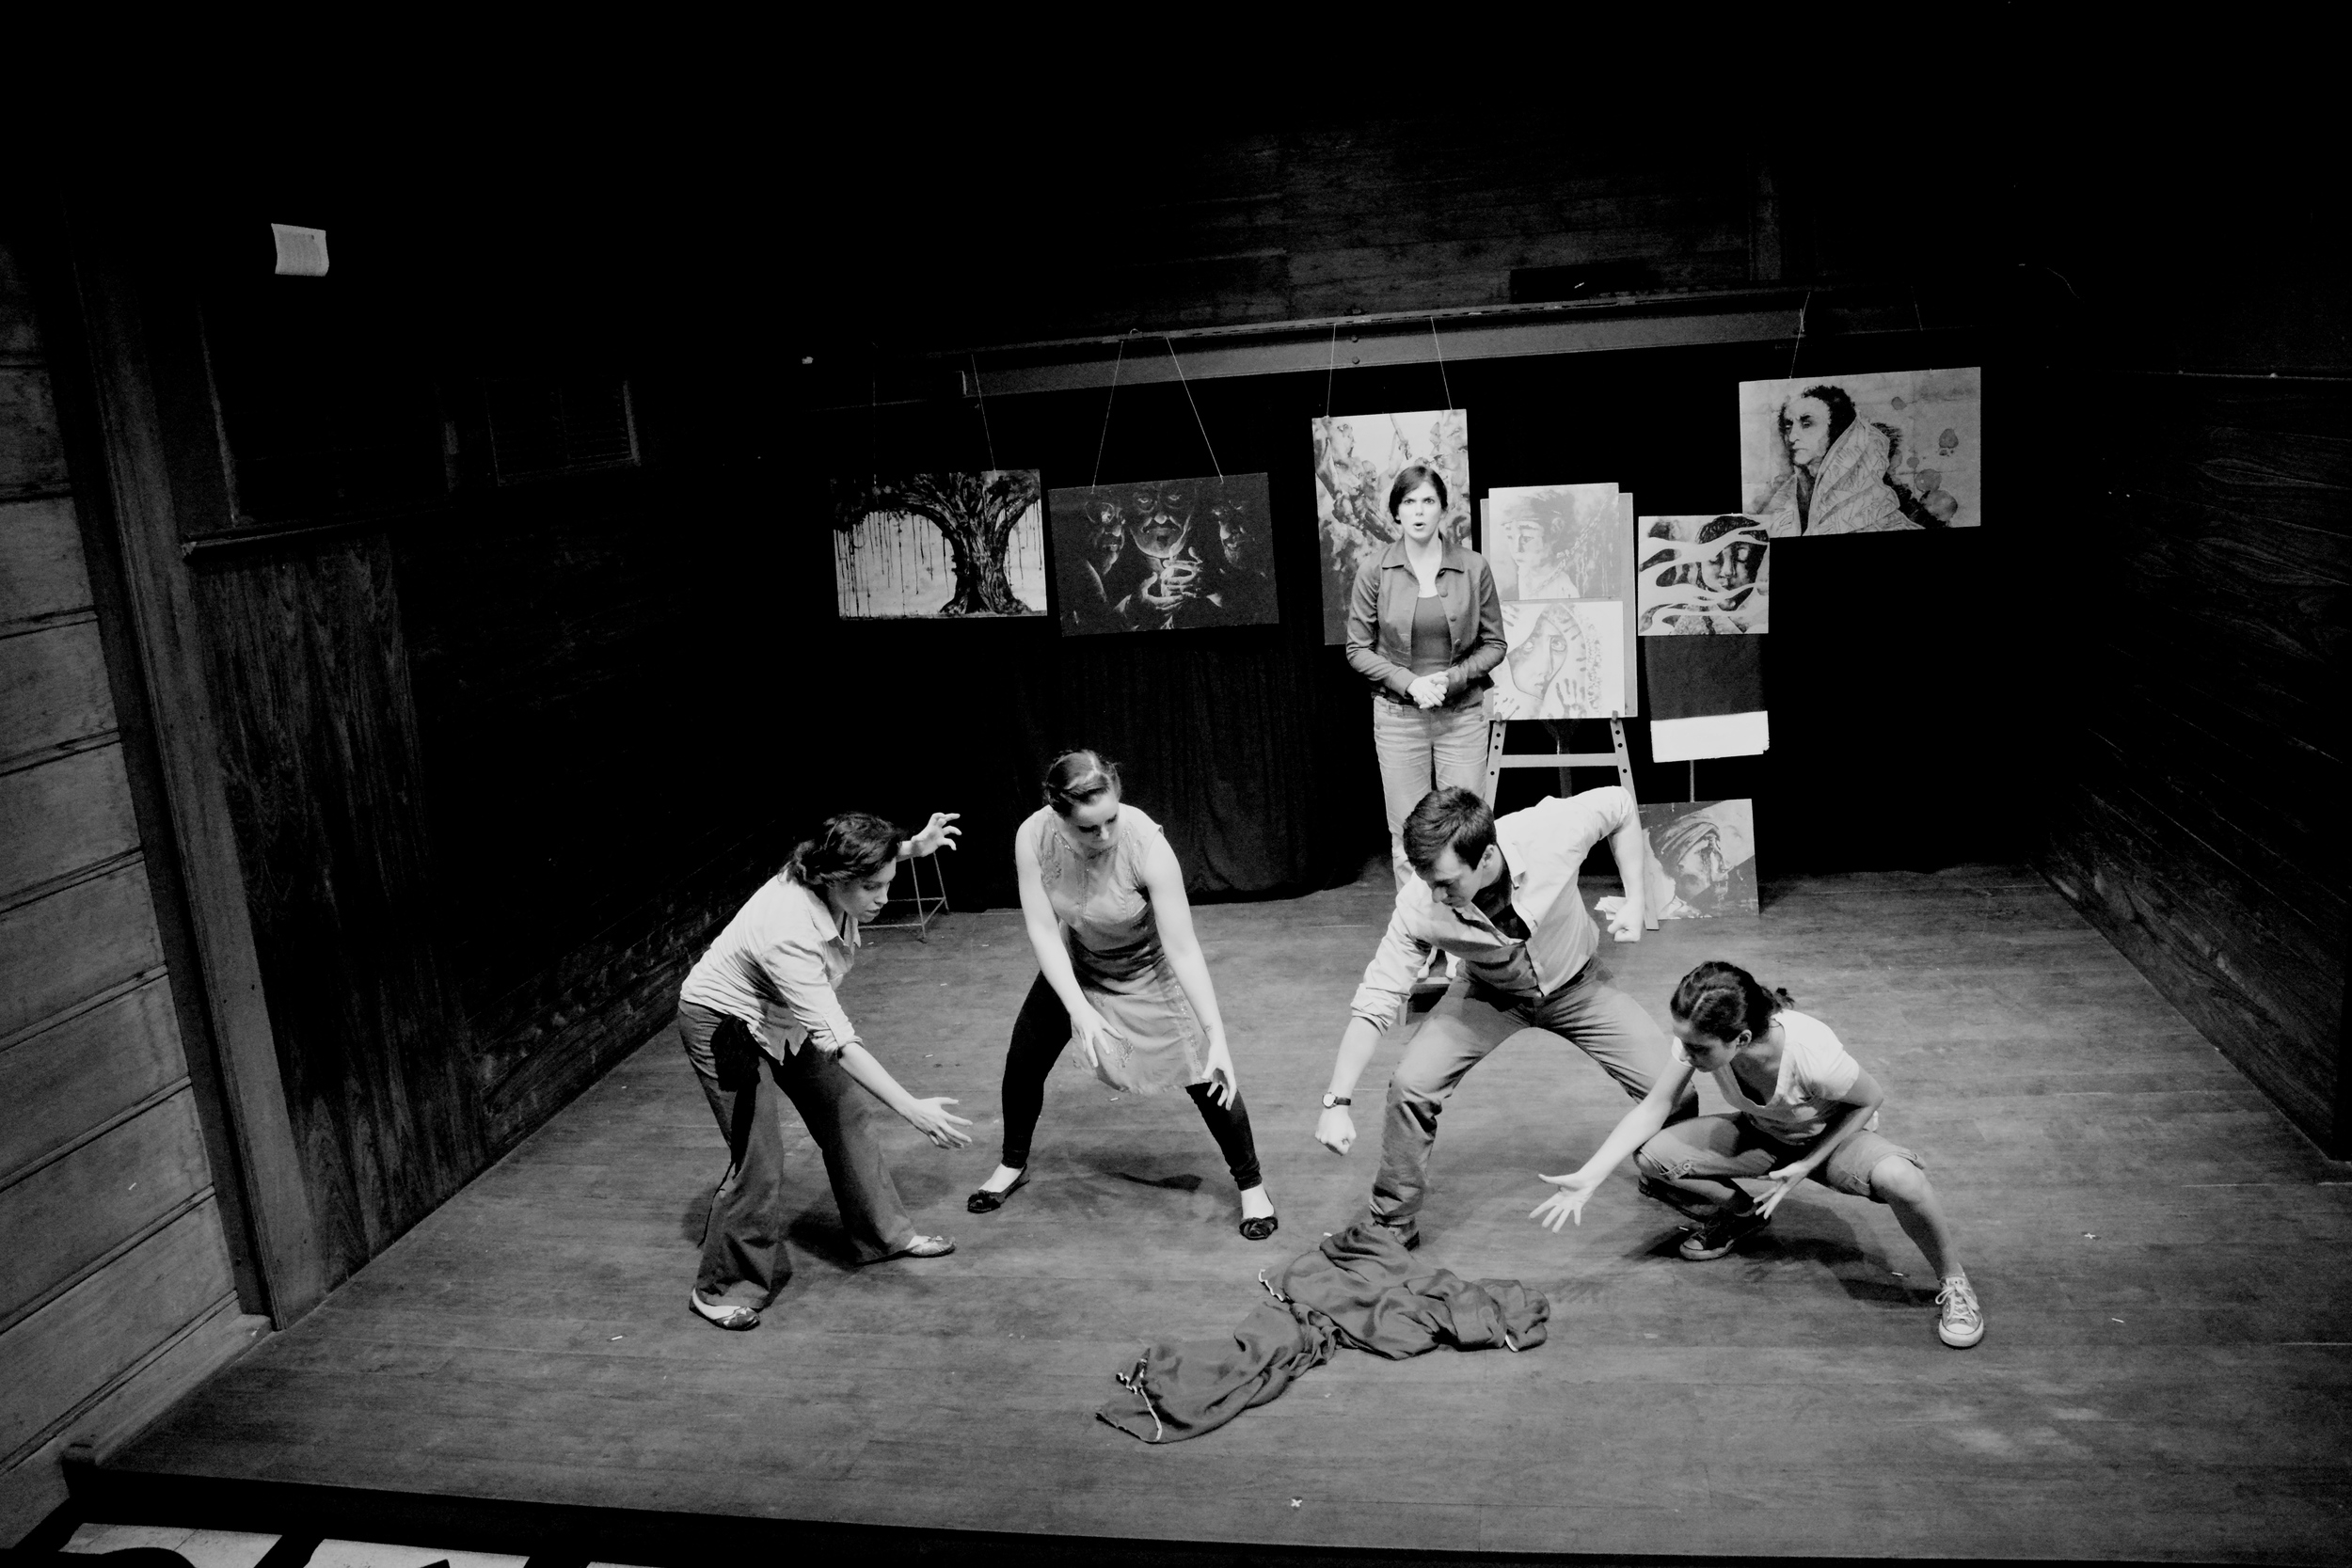 KULTAR'S MIME   Written in verse and set against a backdrop of original artwork, this internationally touring production focuses on the 1984 Anti-Sikh pogrom and the power of performance in the wake of tragedy.